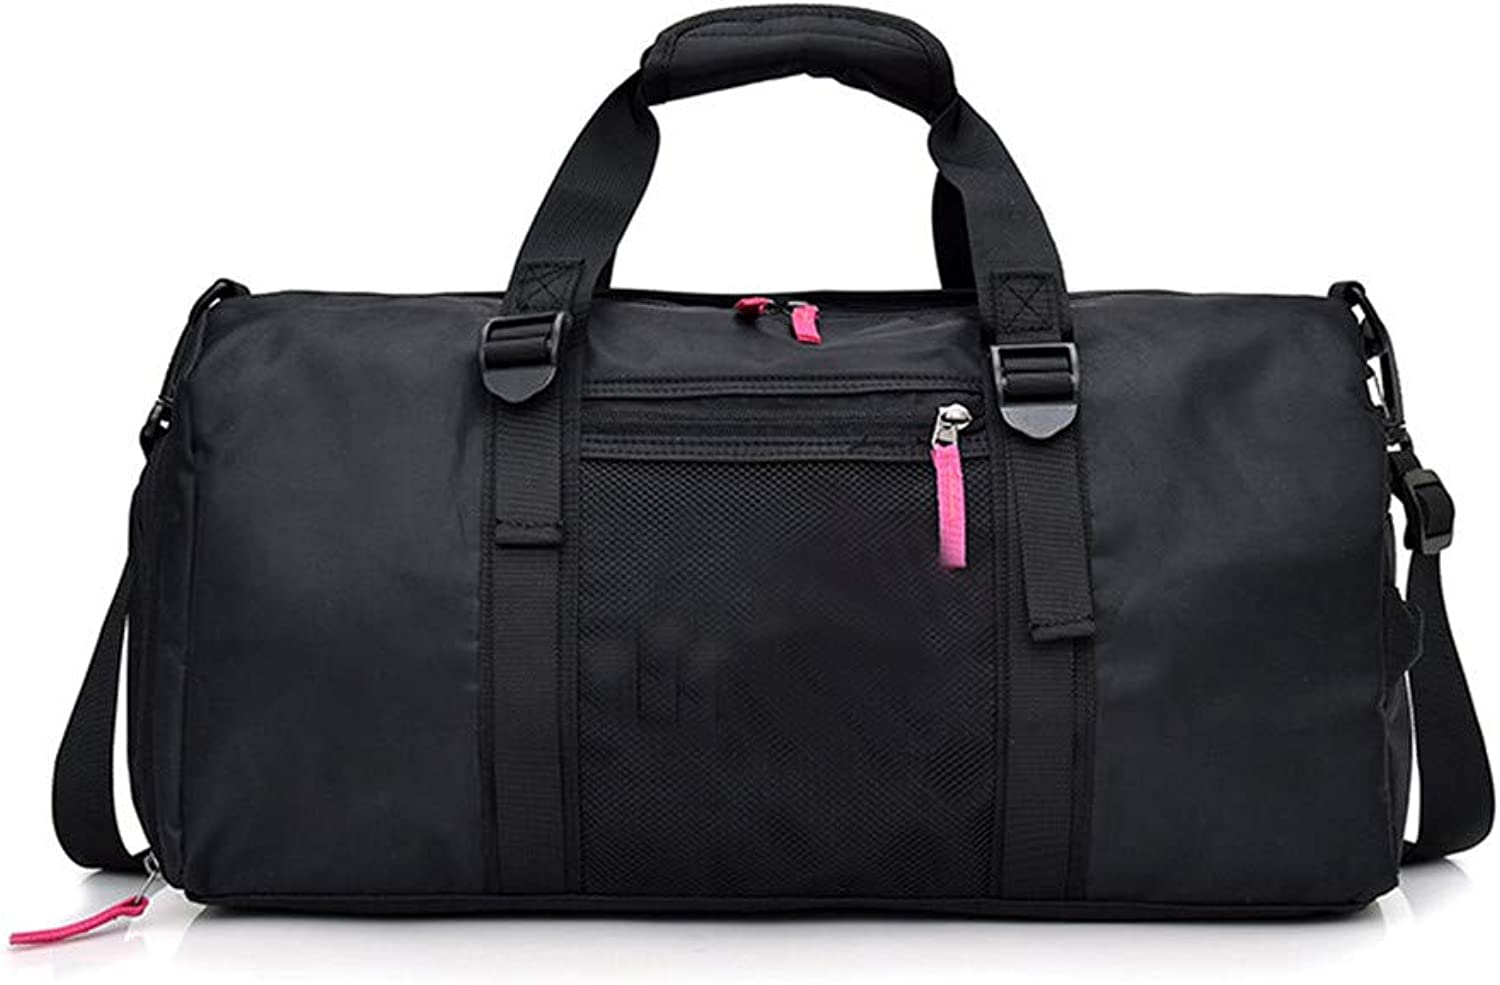 Sports Gym Bag Waterproof Sports with Sports Fitness Bag for Women and Men, Travel Fitness Bag with shoes Compartment Multiuse Travel Duffel Bag (color   Pink)